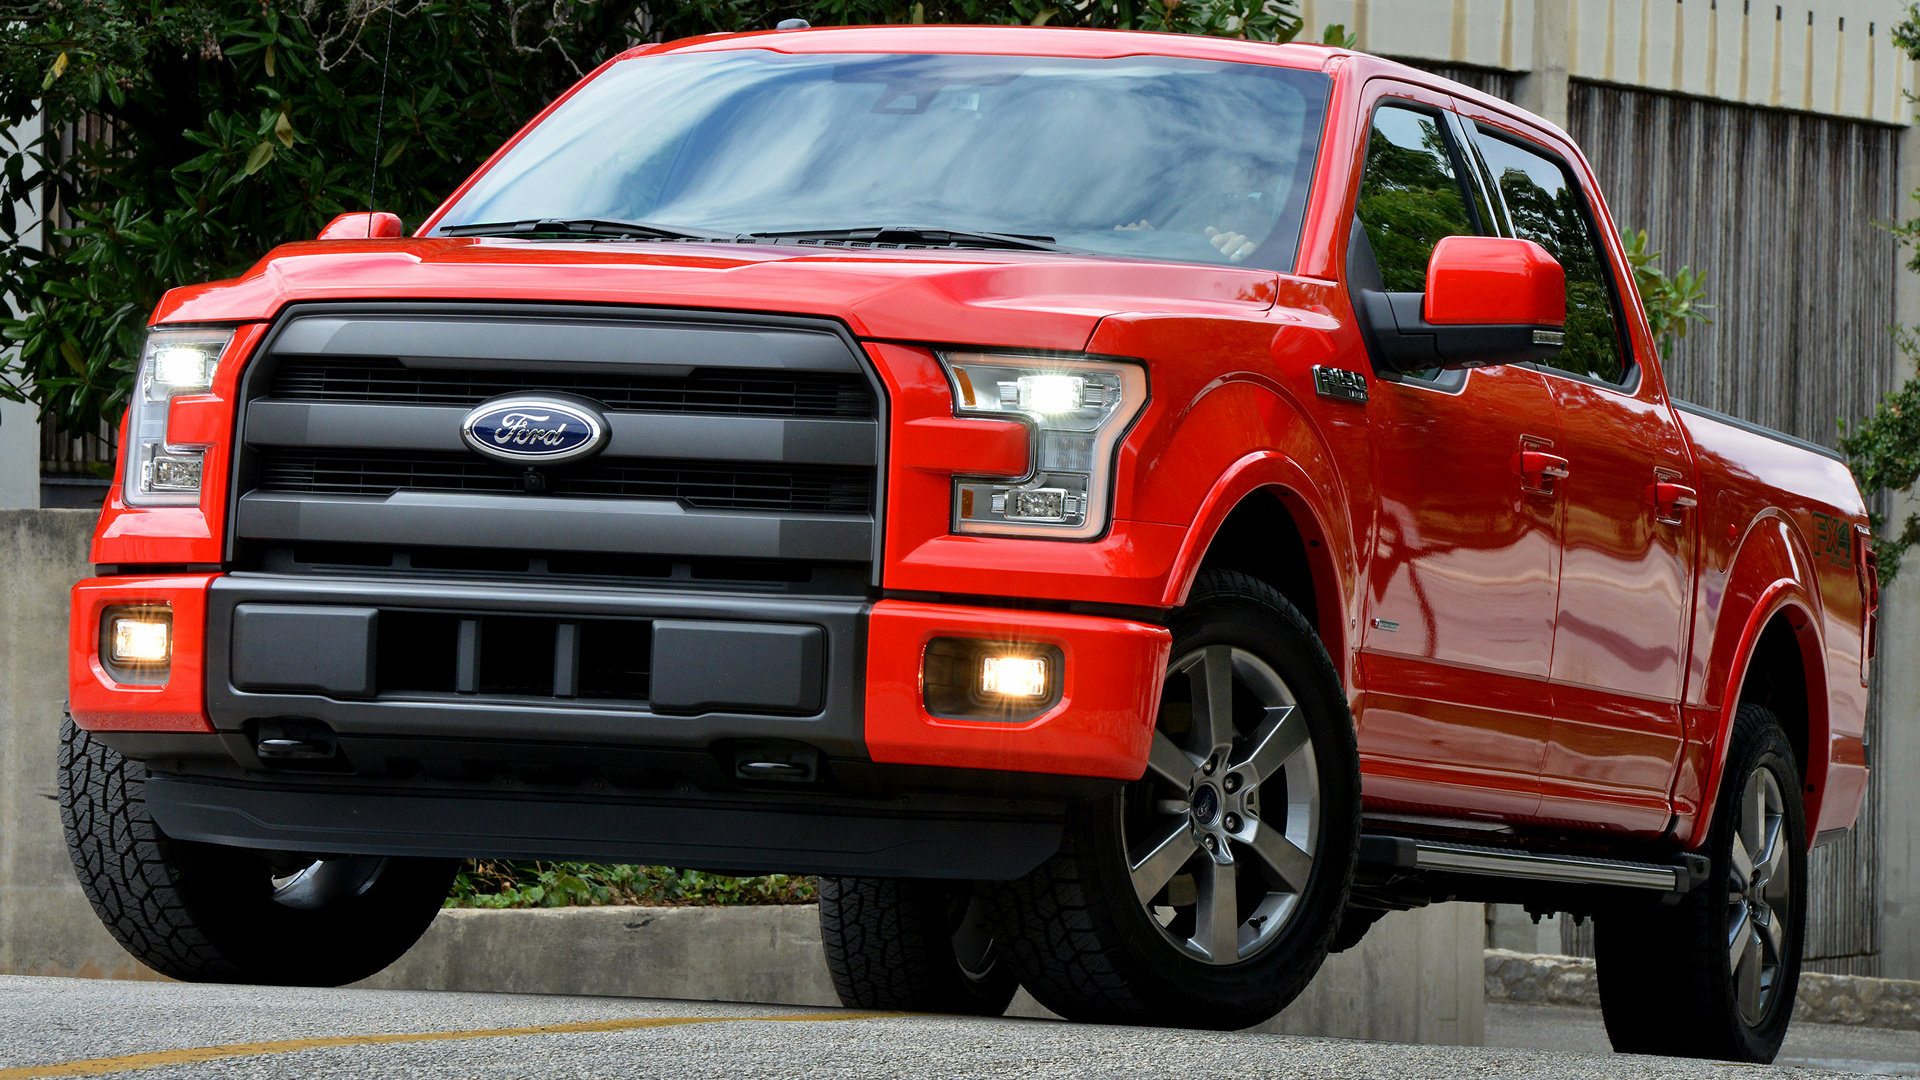 Ford F-150 Lariat FX4 SuperCrew (2015) Wallpapers and HD Images - Car Pixel